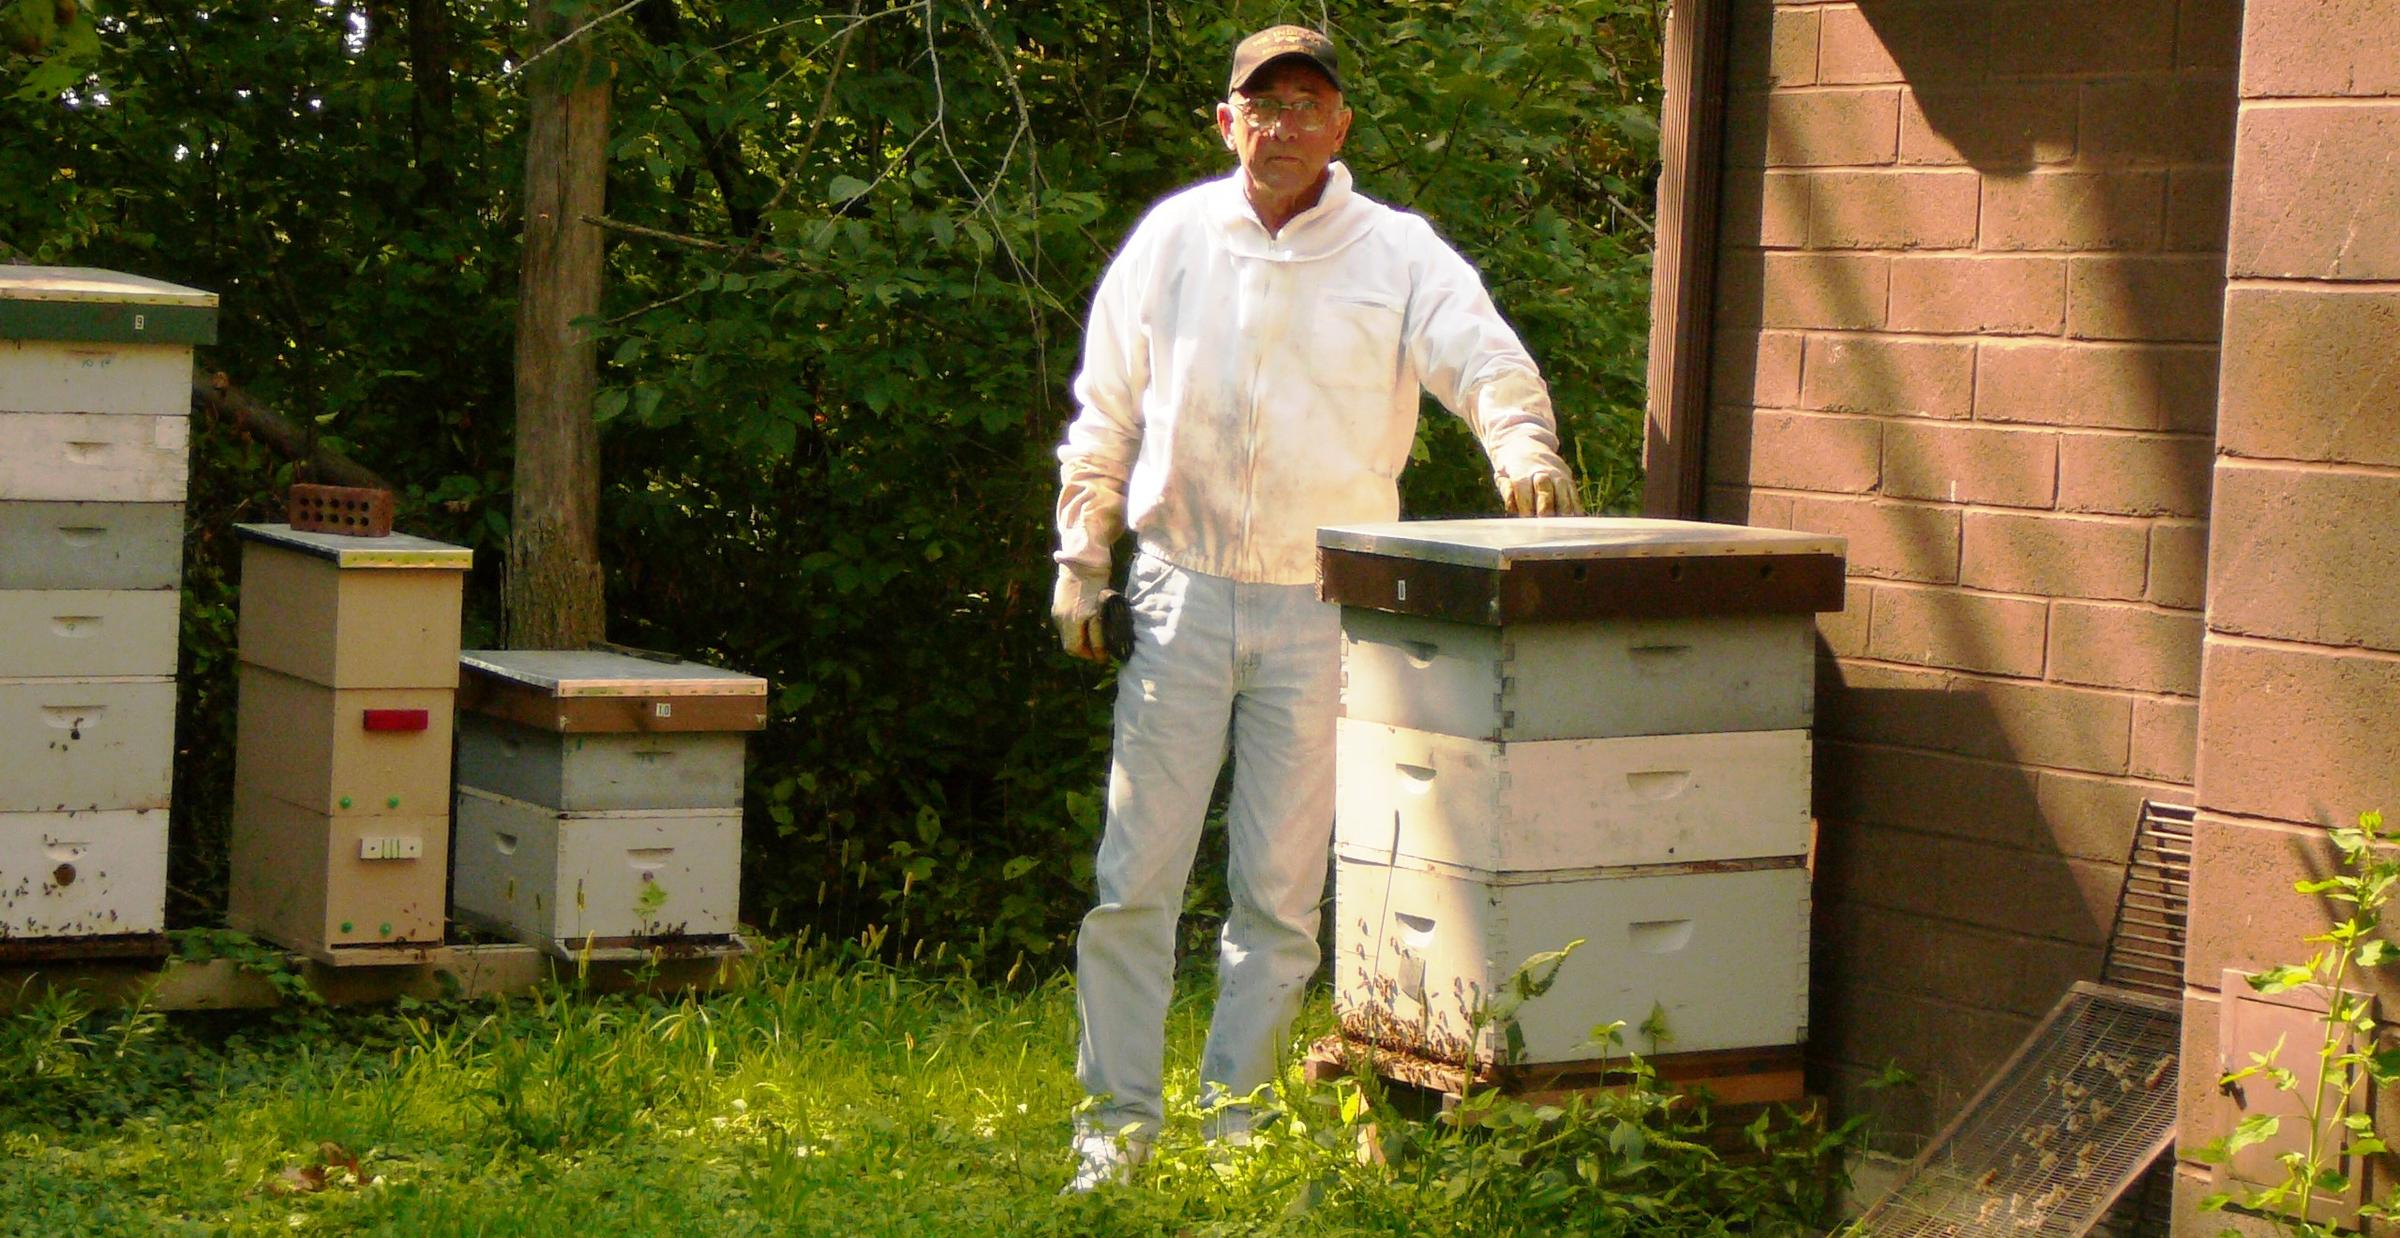 Gentil Backyard Beekeeping Is All The Buzz